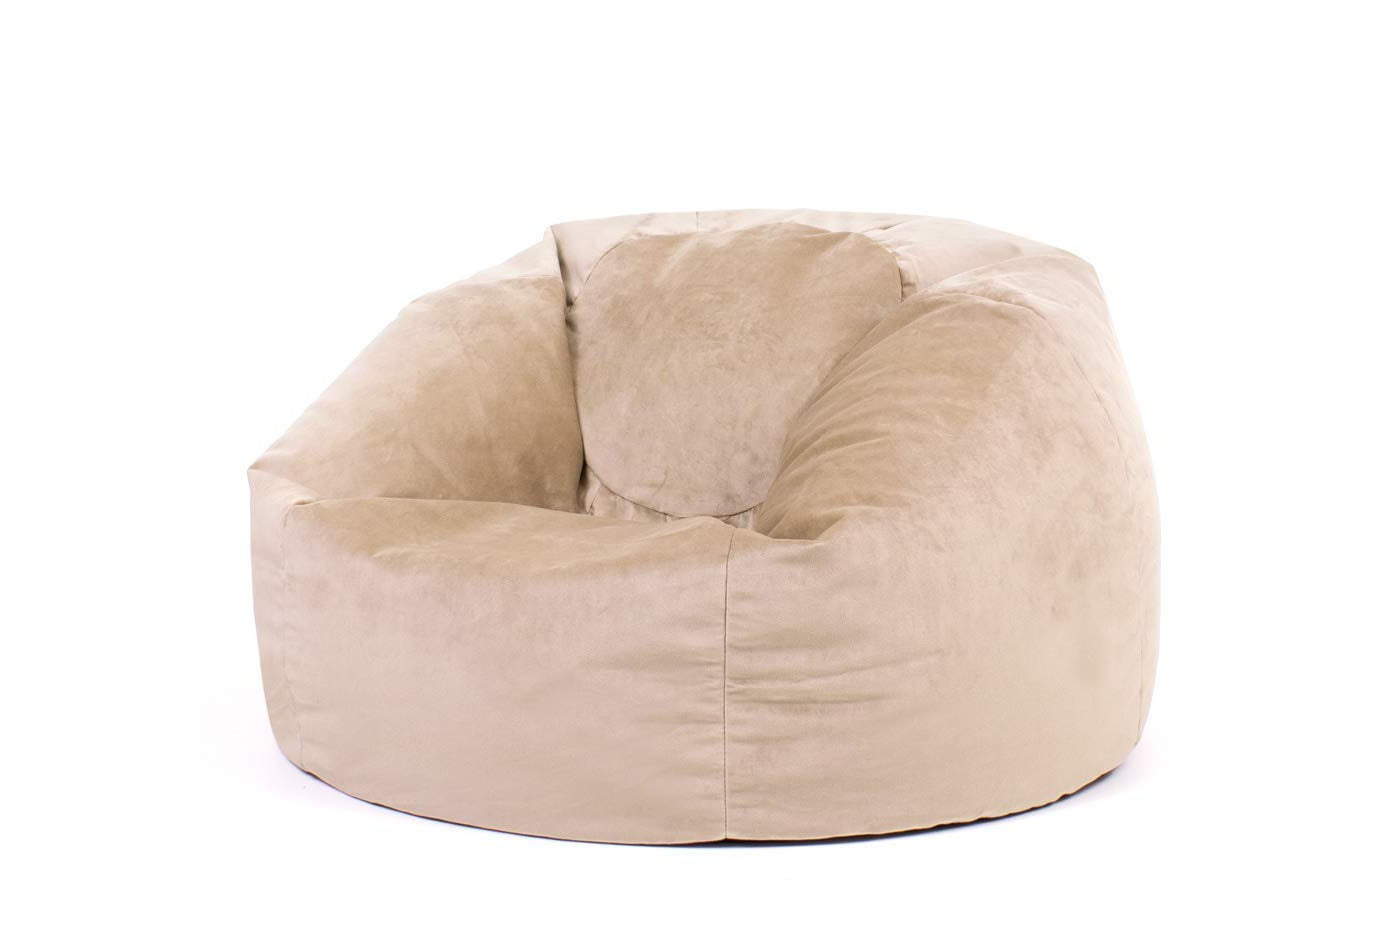 Why This Luxury Plush Bean Bag Chair is Our Favourite